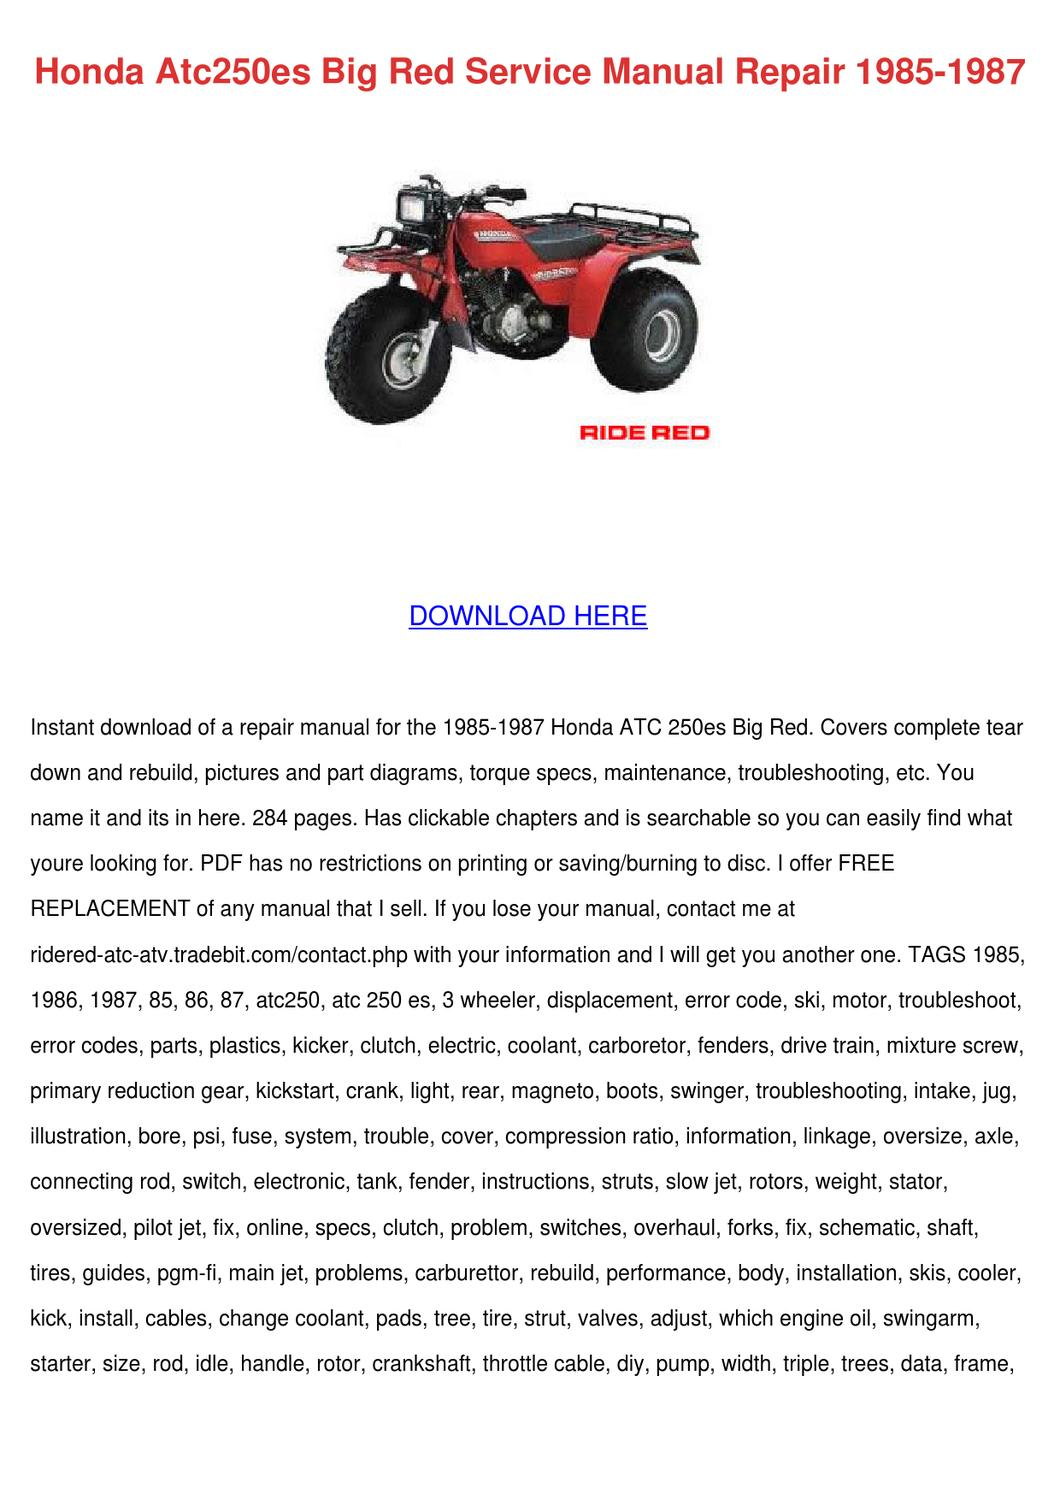 Big Red 250 Diagram Wiring Diagram Services \u2022 1986 Honda ATV Wiring  Diagram 1985 Honda 250 Big Red Wiring Diagram